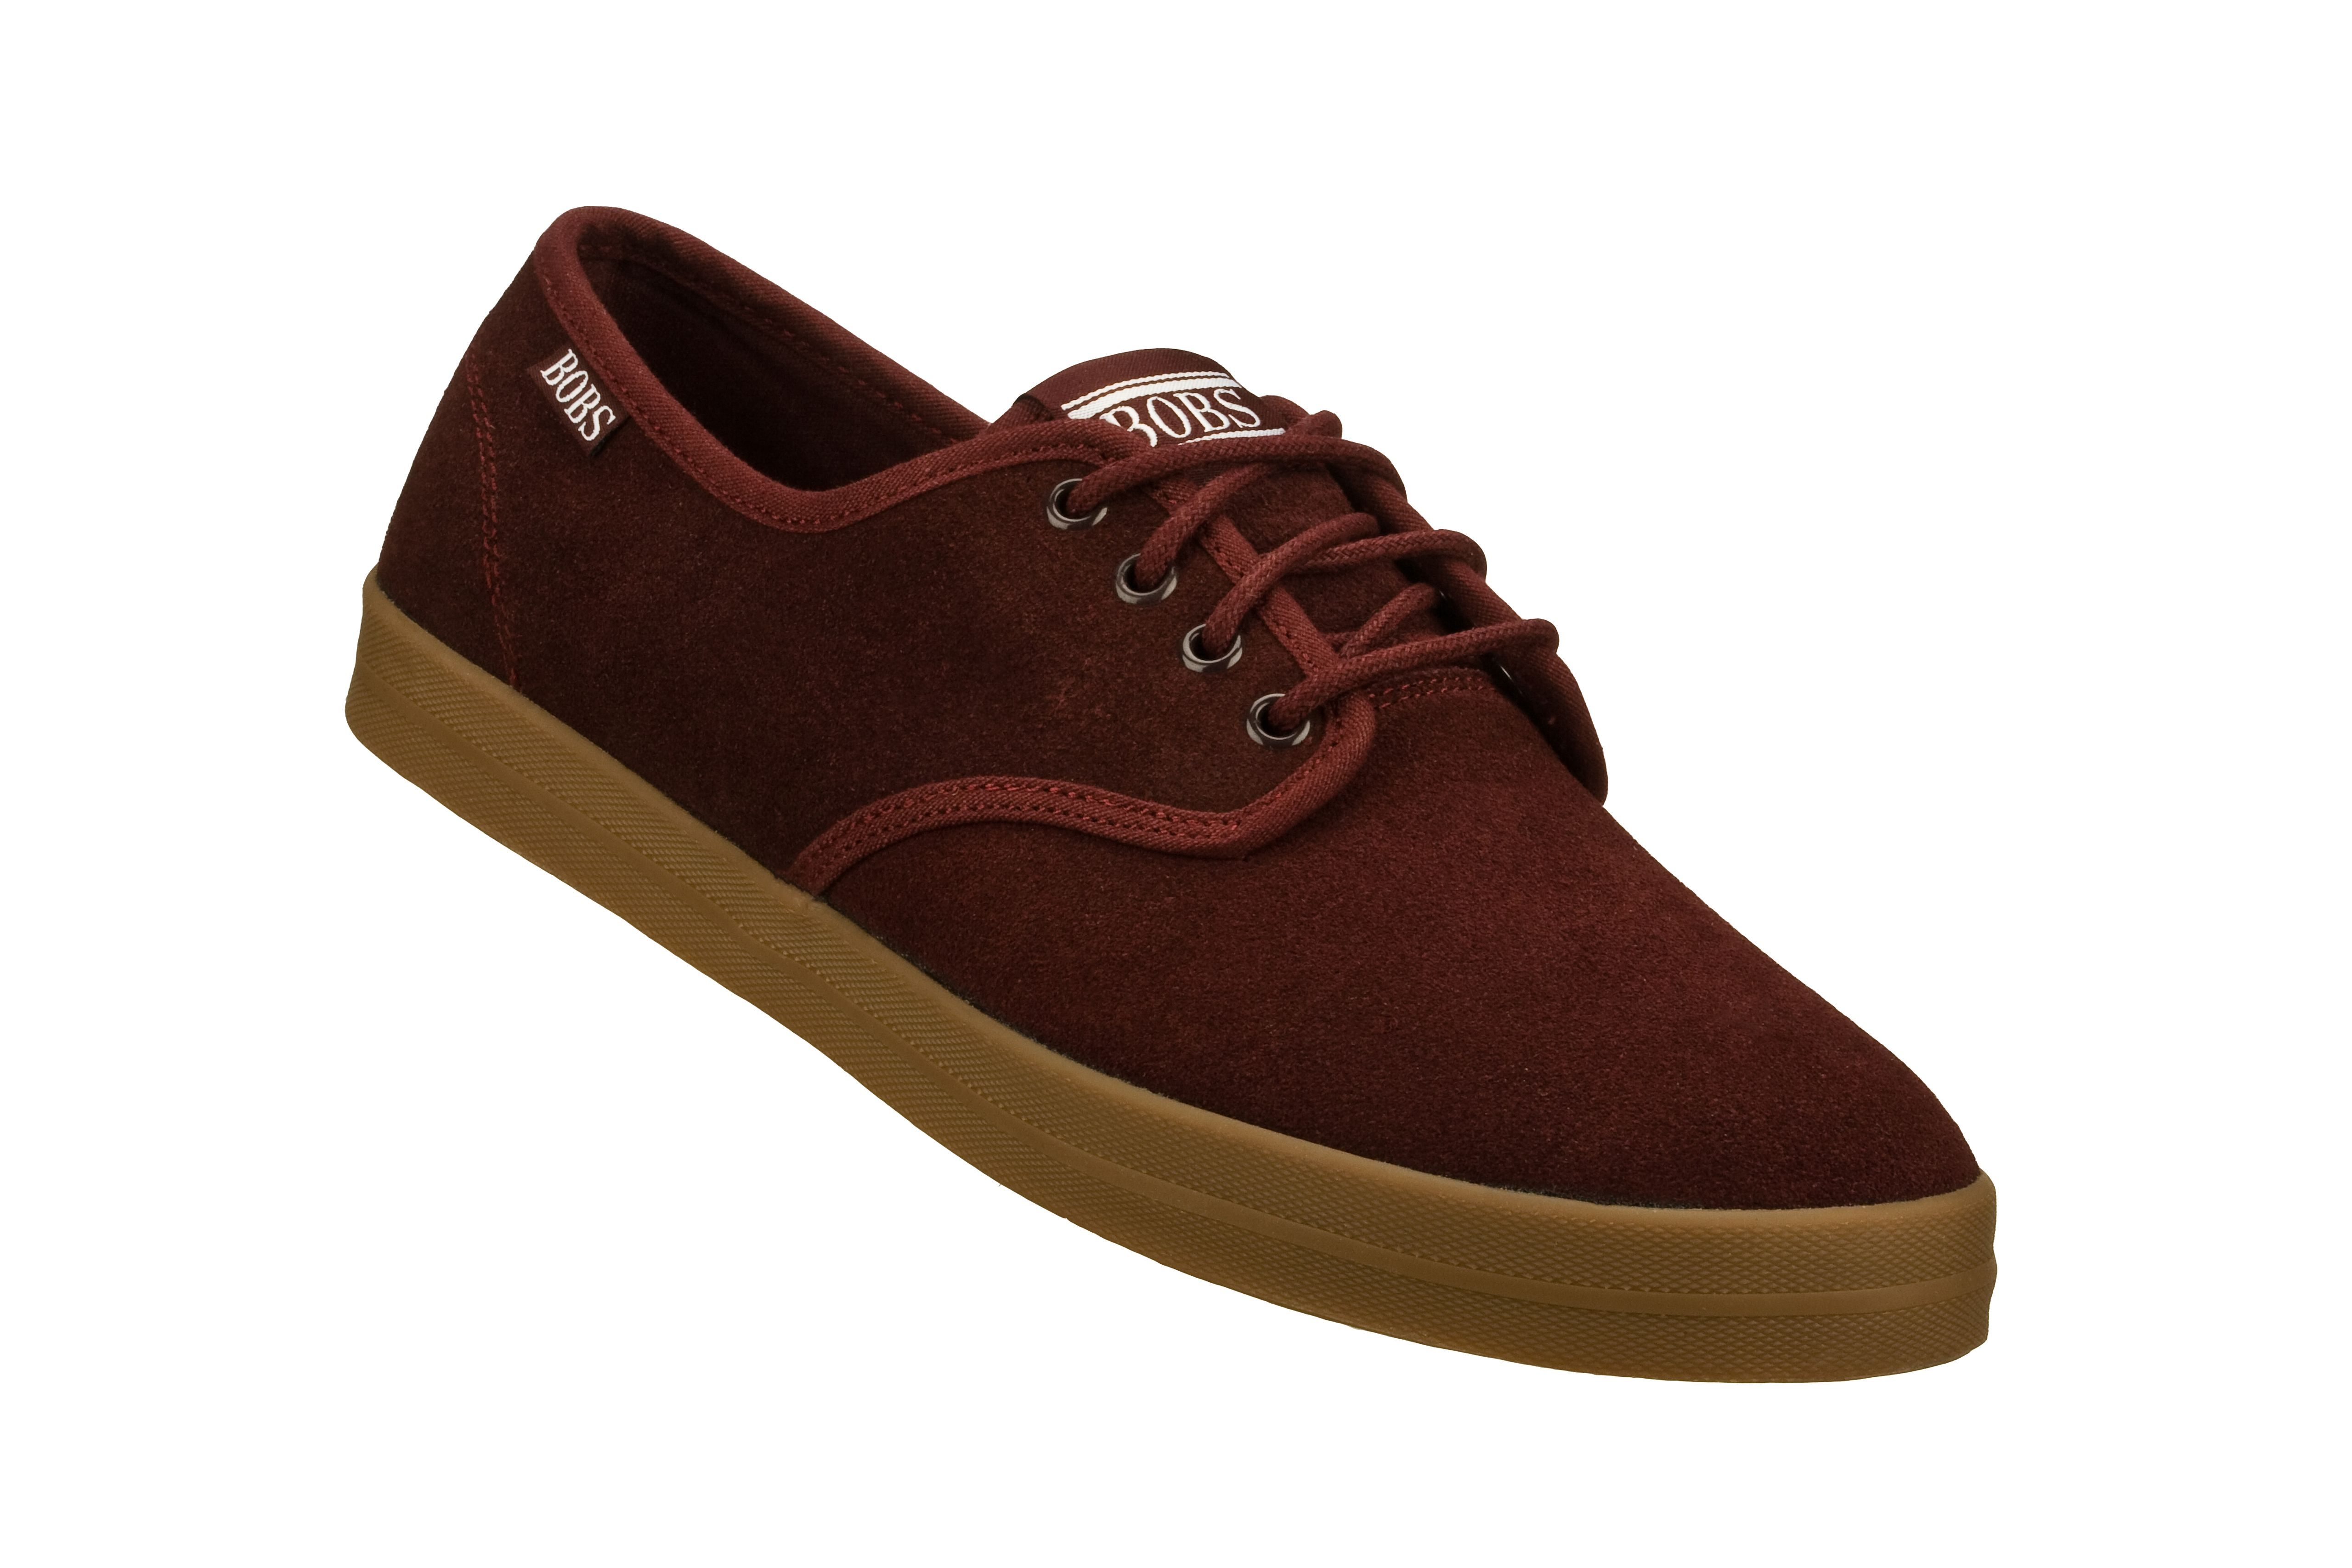 MEN'S BOBS KUSTOM  Awesome fall color in these BOBS Kustom lace-ups. #GiveThanksPintoWin